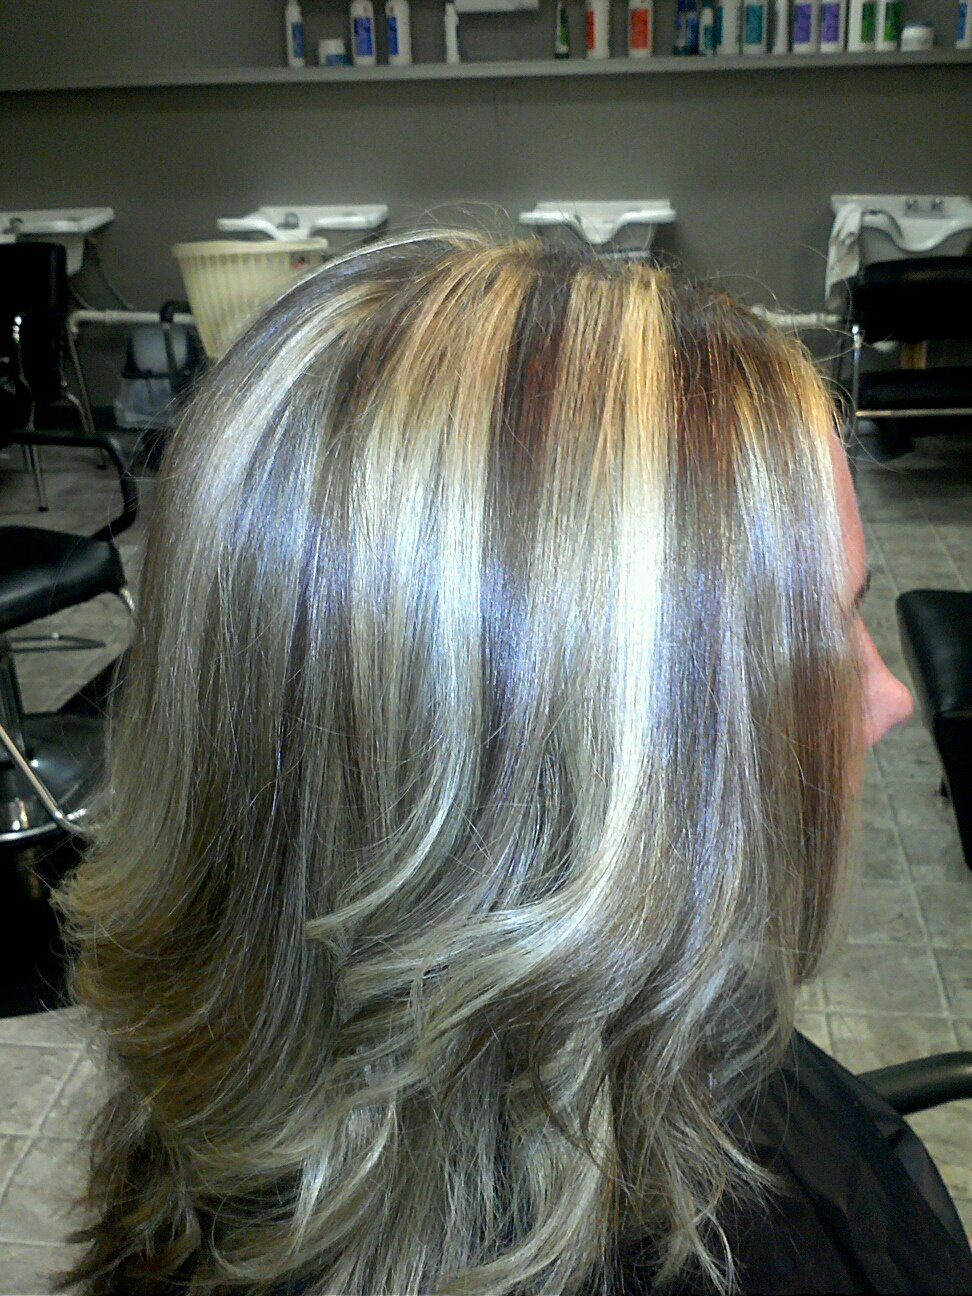 46+ Hairstyles with highlights and lowlights inspirations